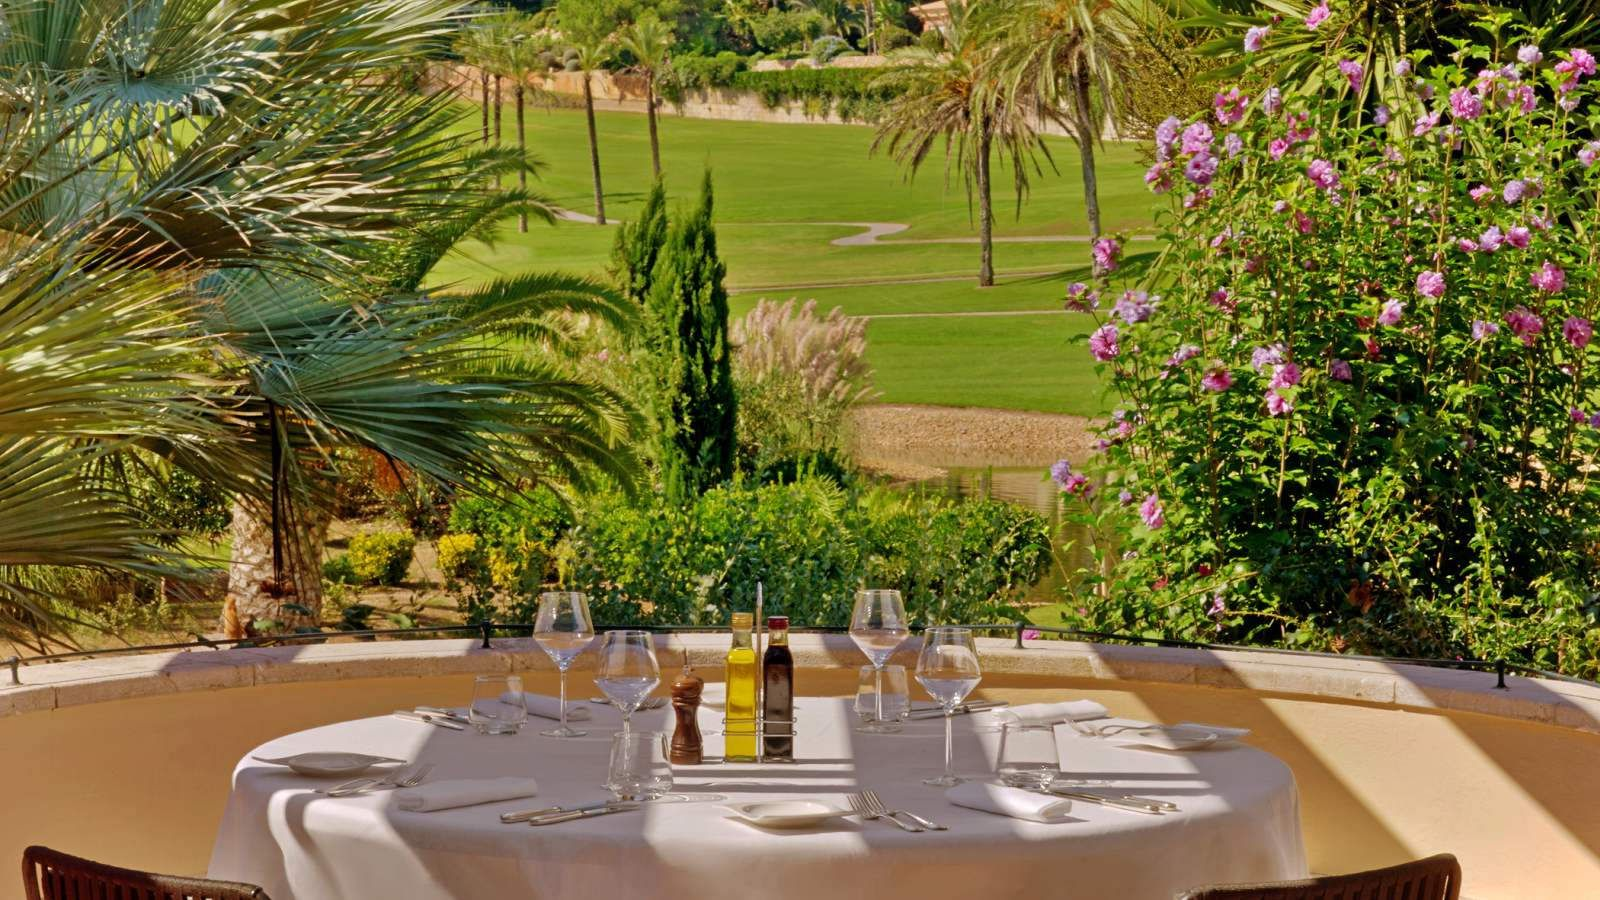 Terrace with views in Palma de Mallorca at Sheraton Arabella Golf Hotel